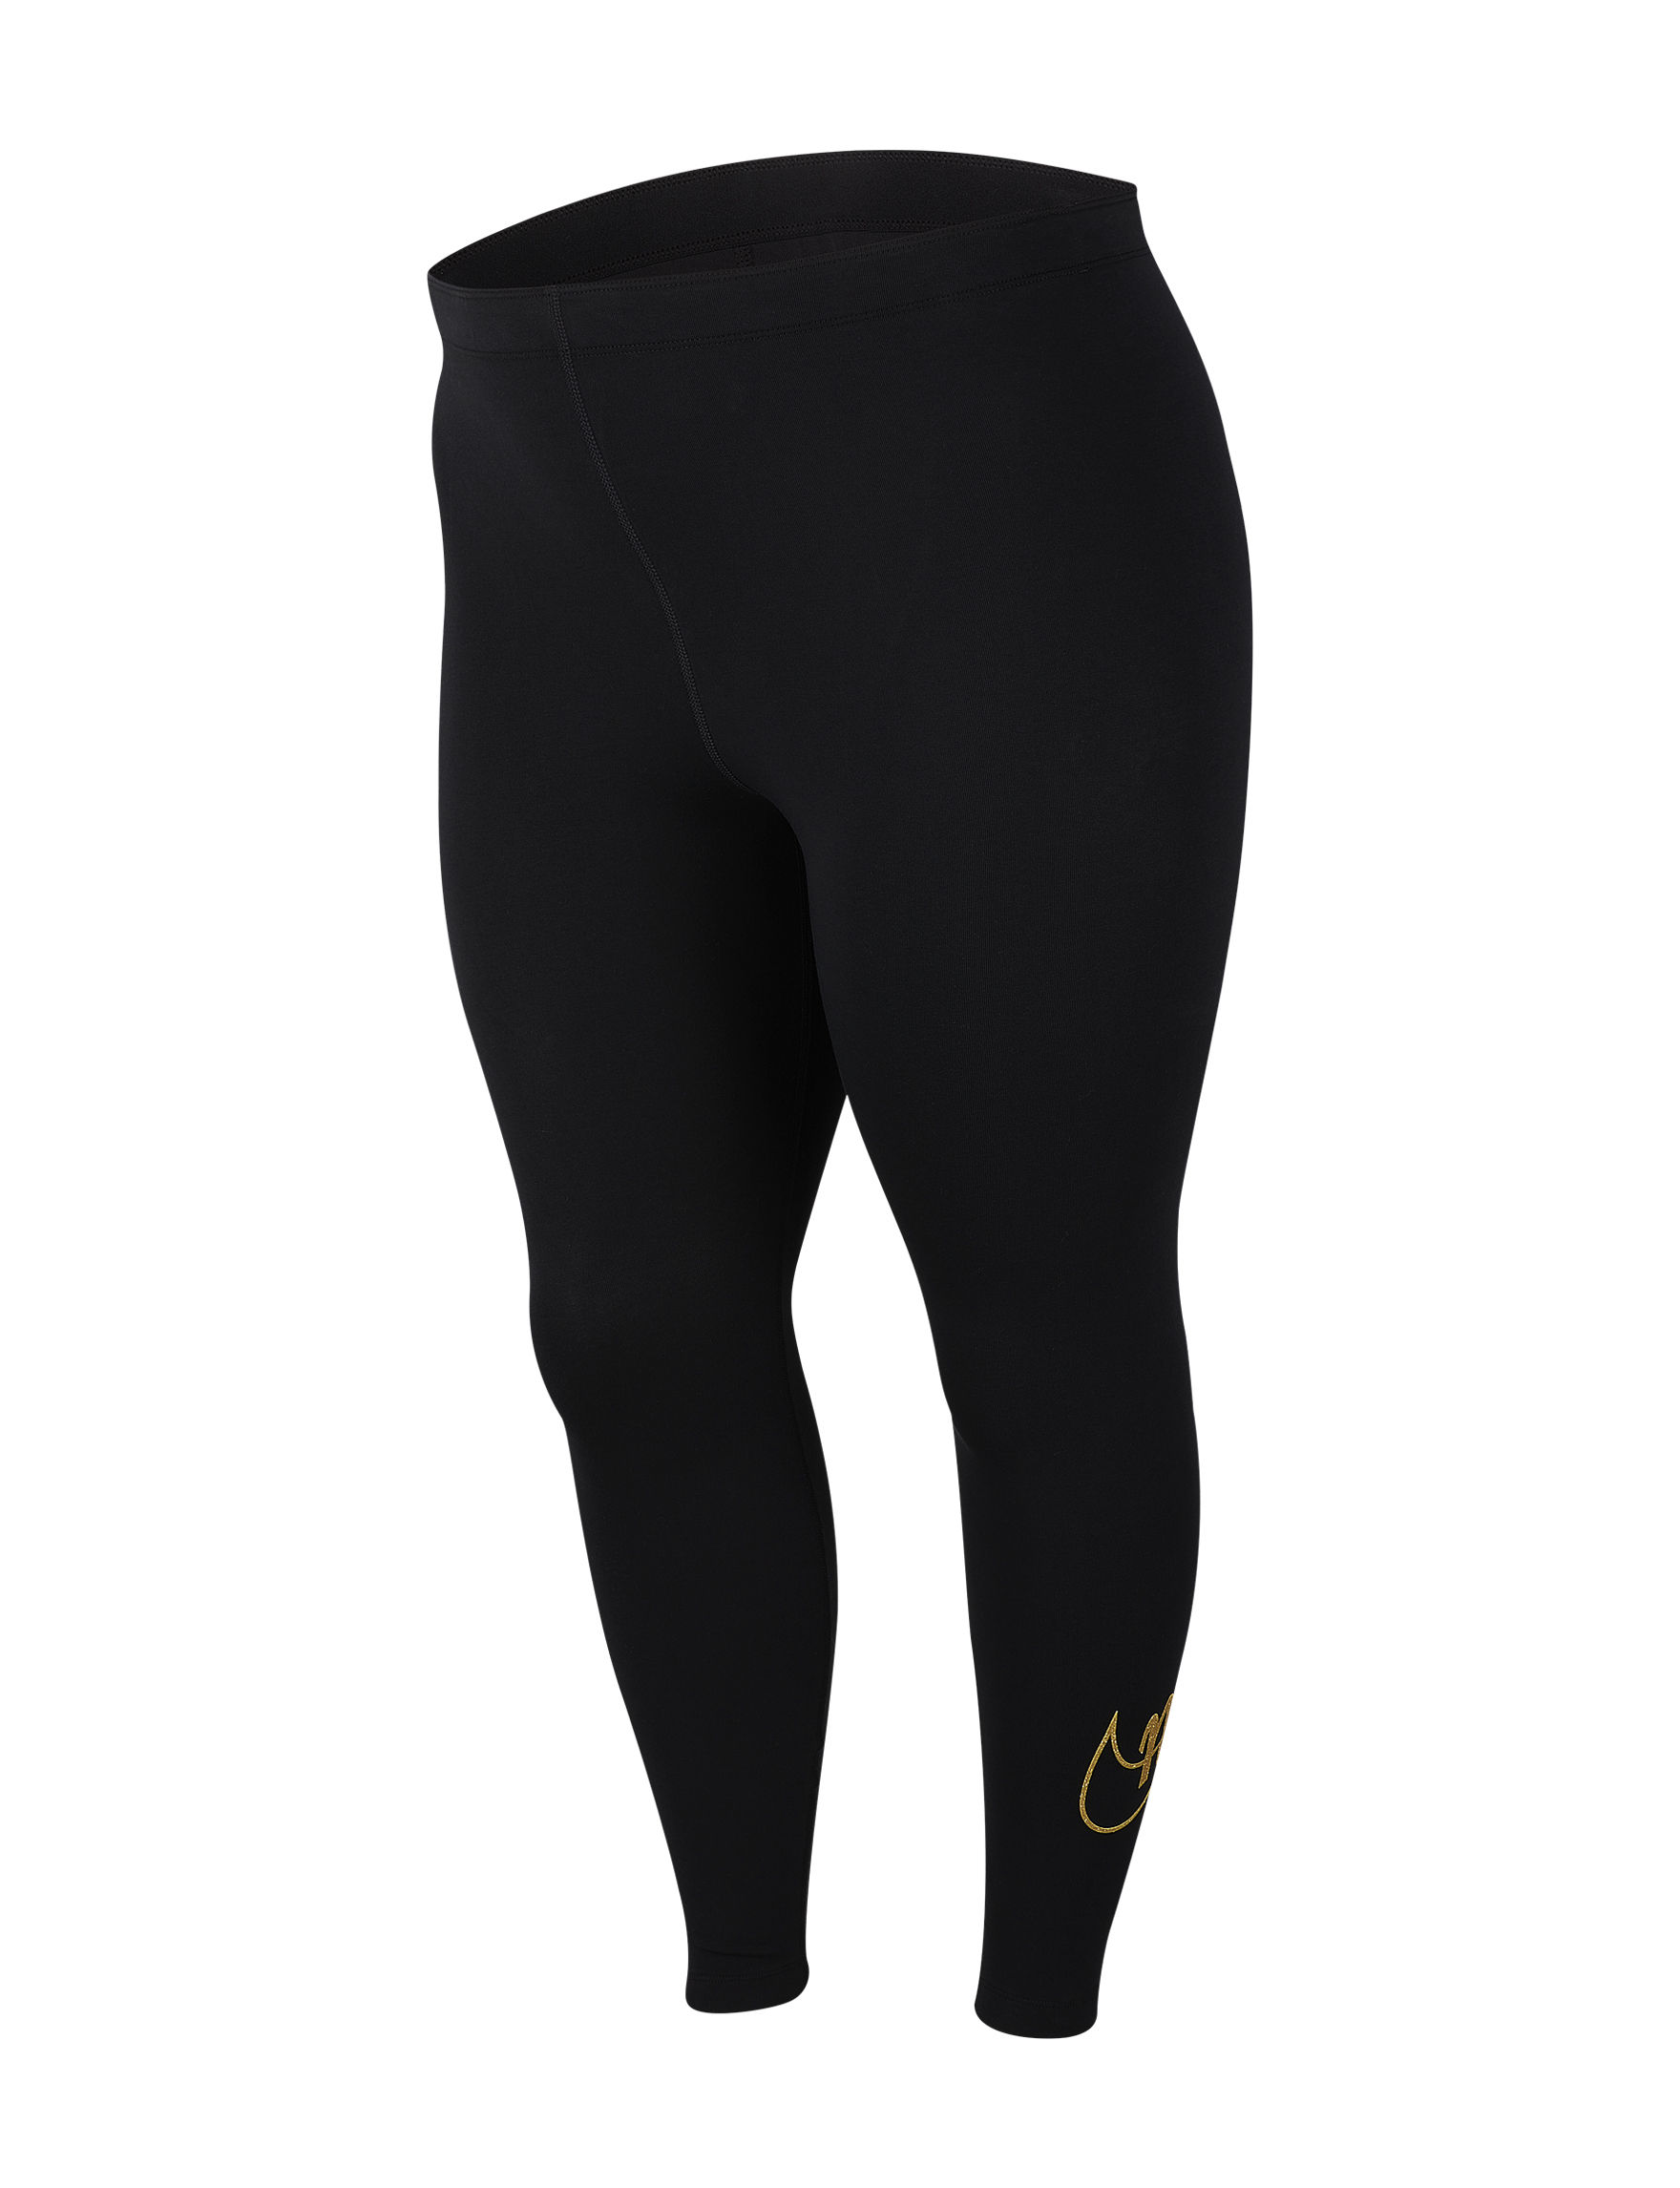 Nike Black / Gold Active Leggings